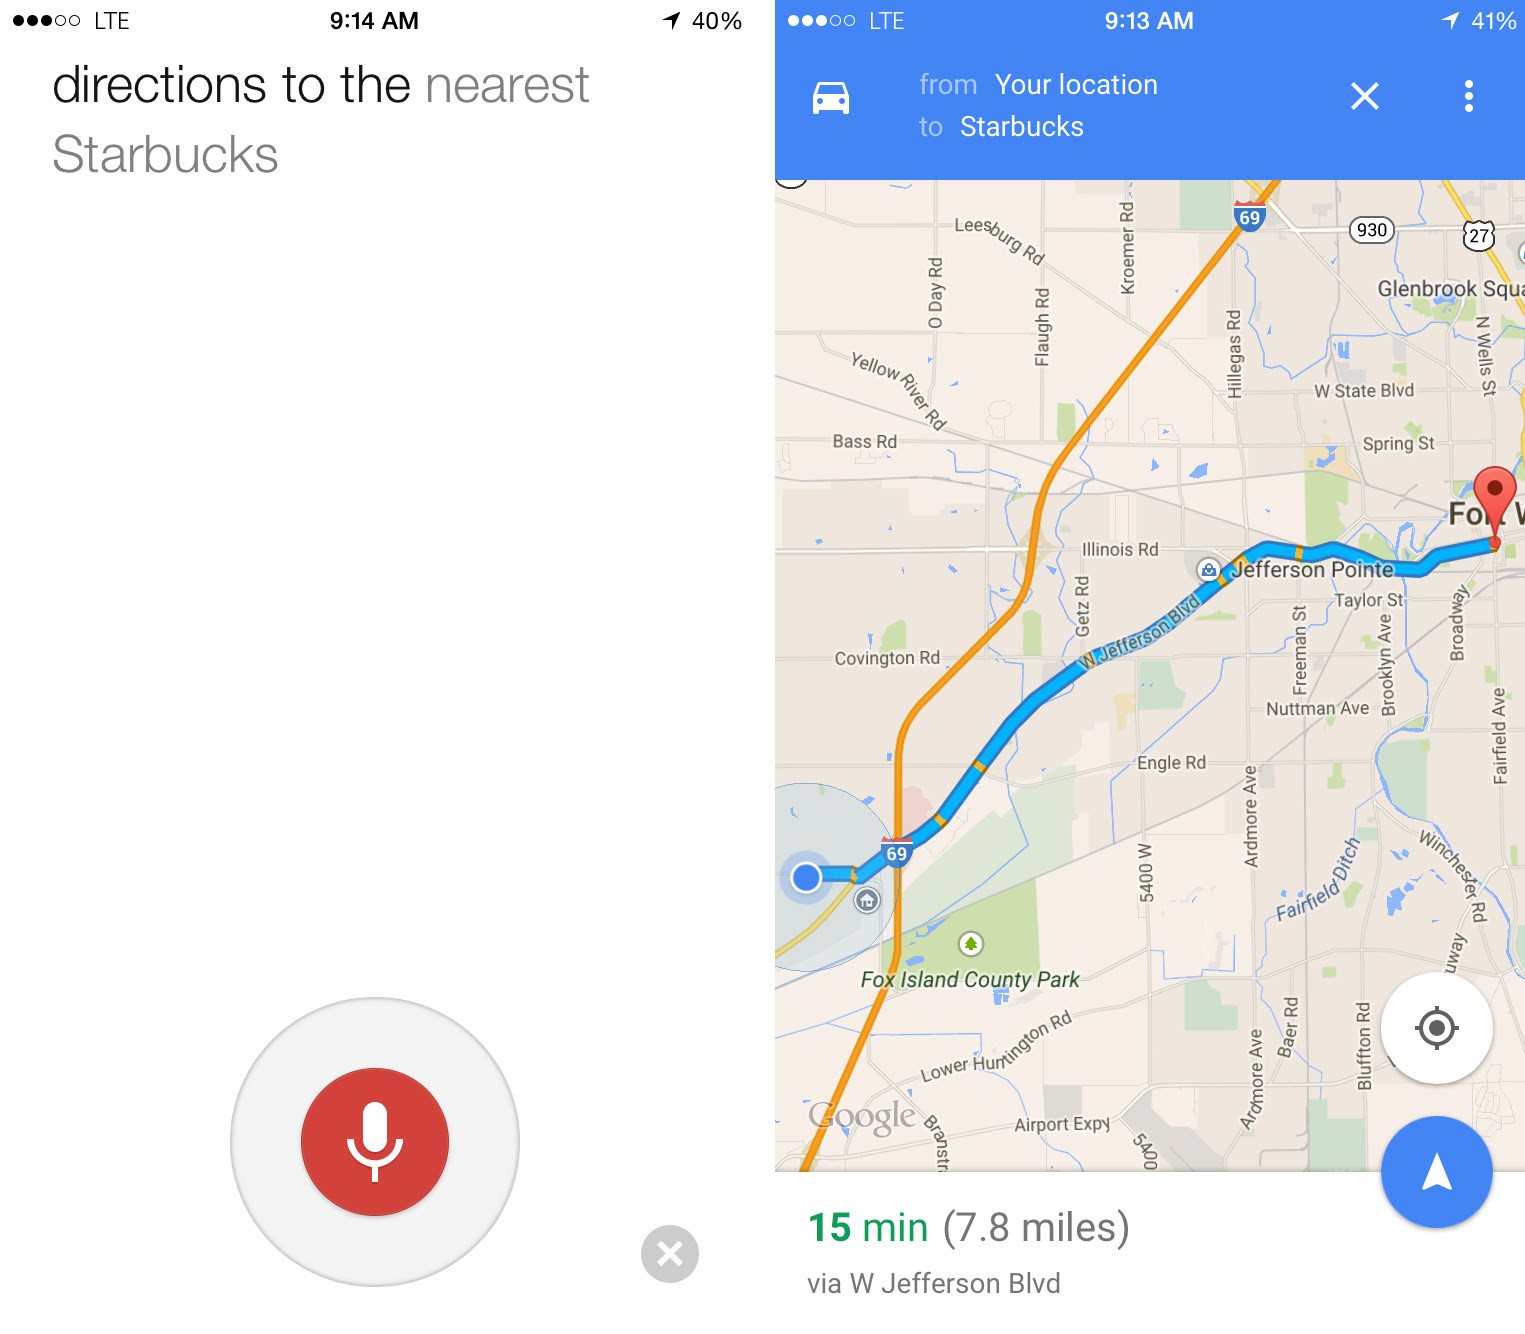 How To Use Google Maps With Your Voice On Iphone